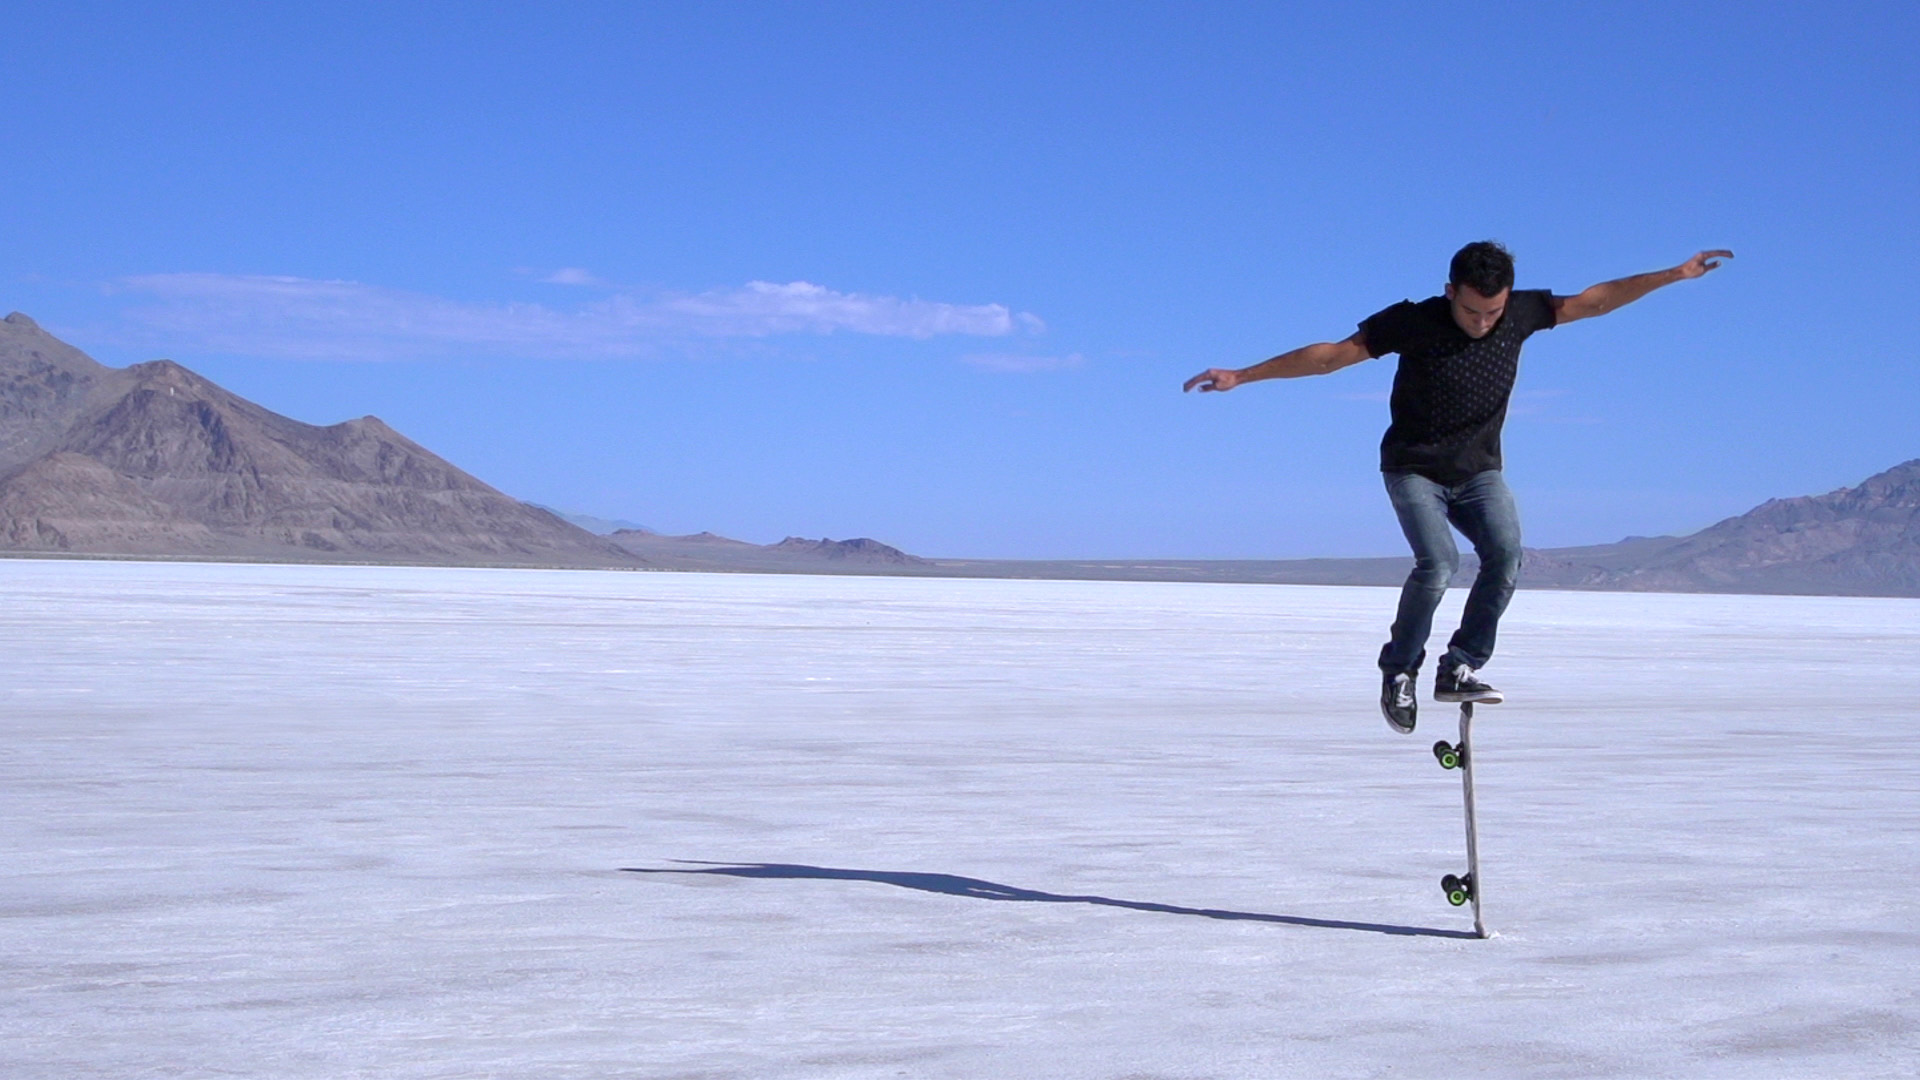 Kilian Martin Proves Anything is Skateable In Stunning 'Searching Sirocco' Video